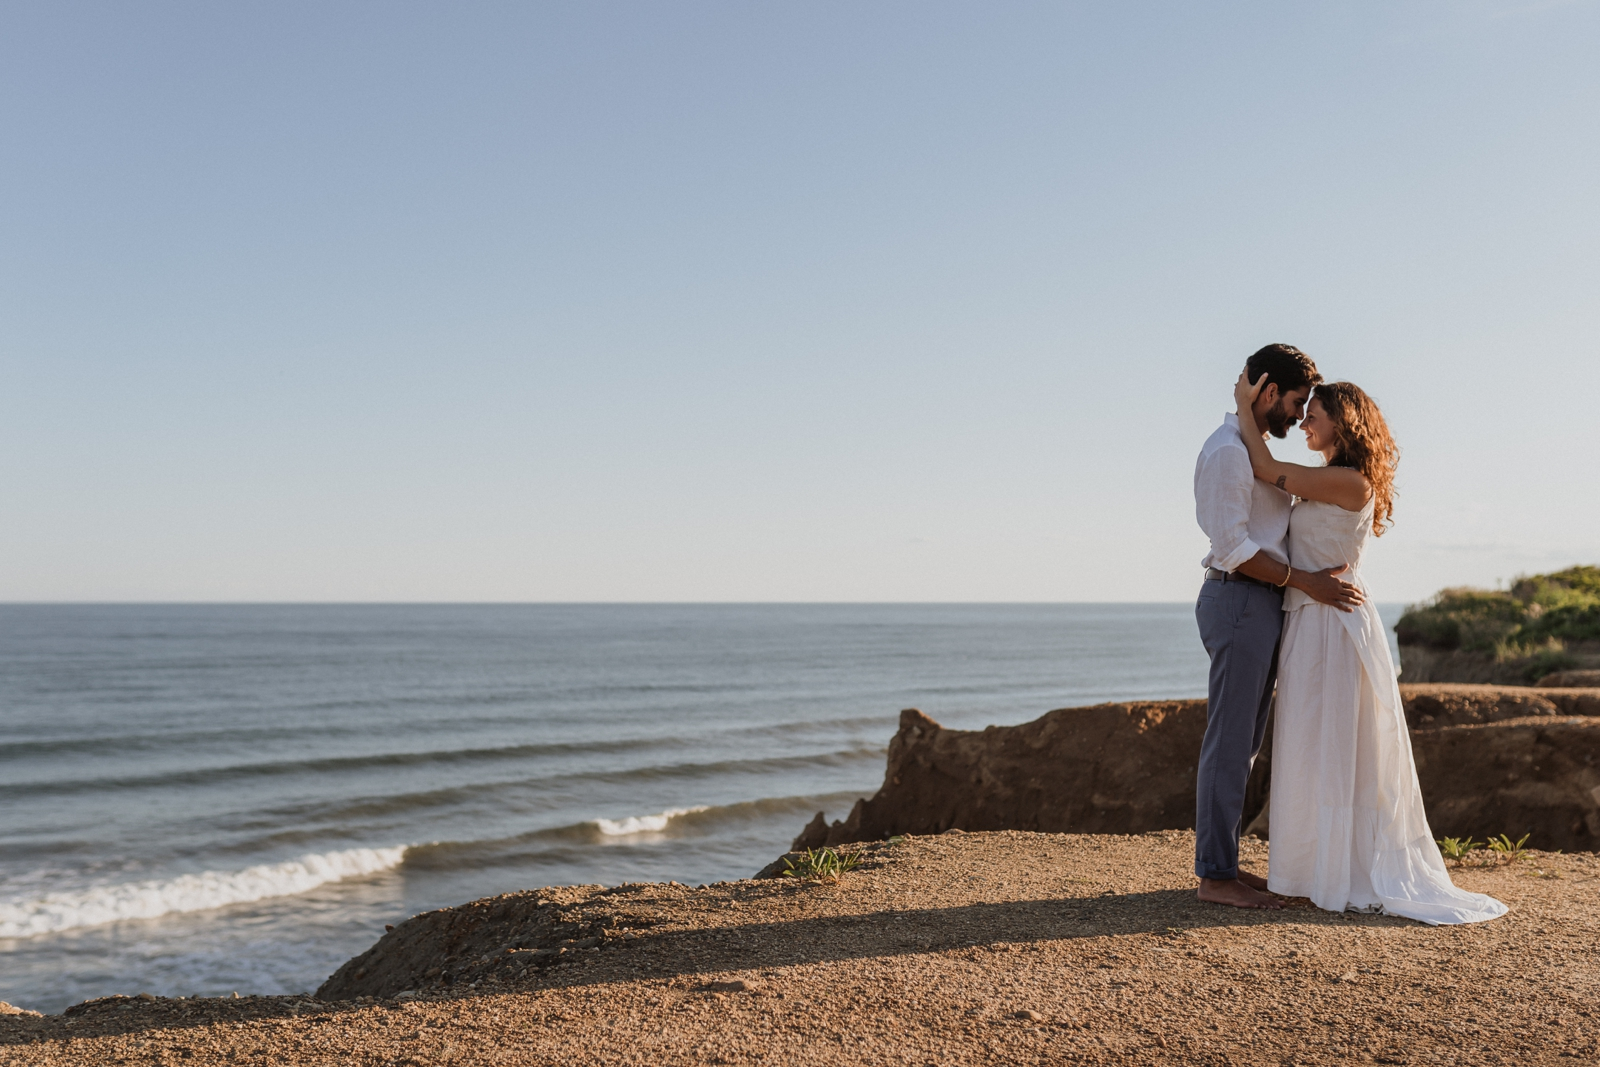 JJP_Nikki & Bud_Shadmoor_Montauk_NY_Cliff Engagement Session5.jpg_blog.jpg